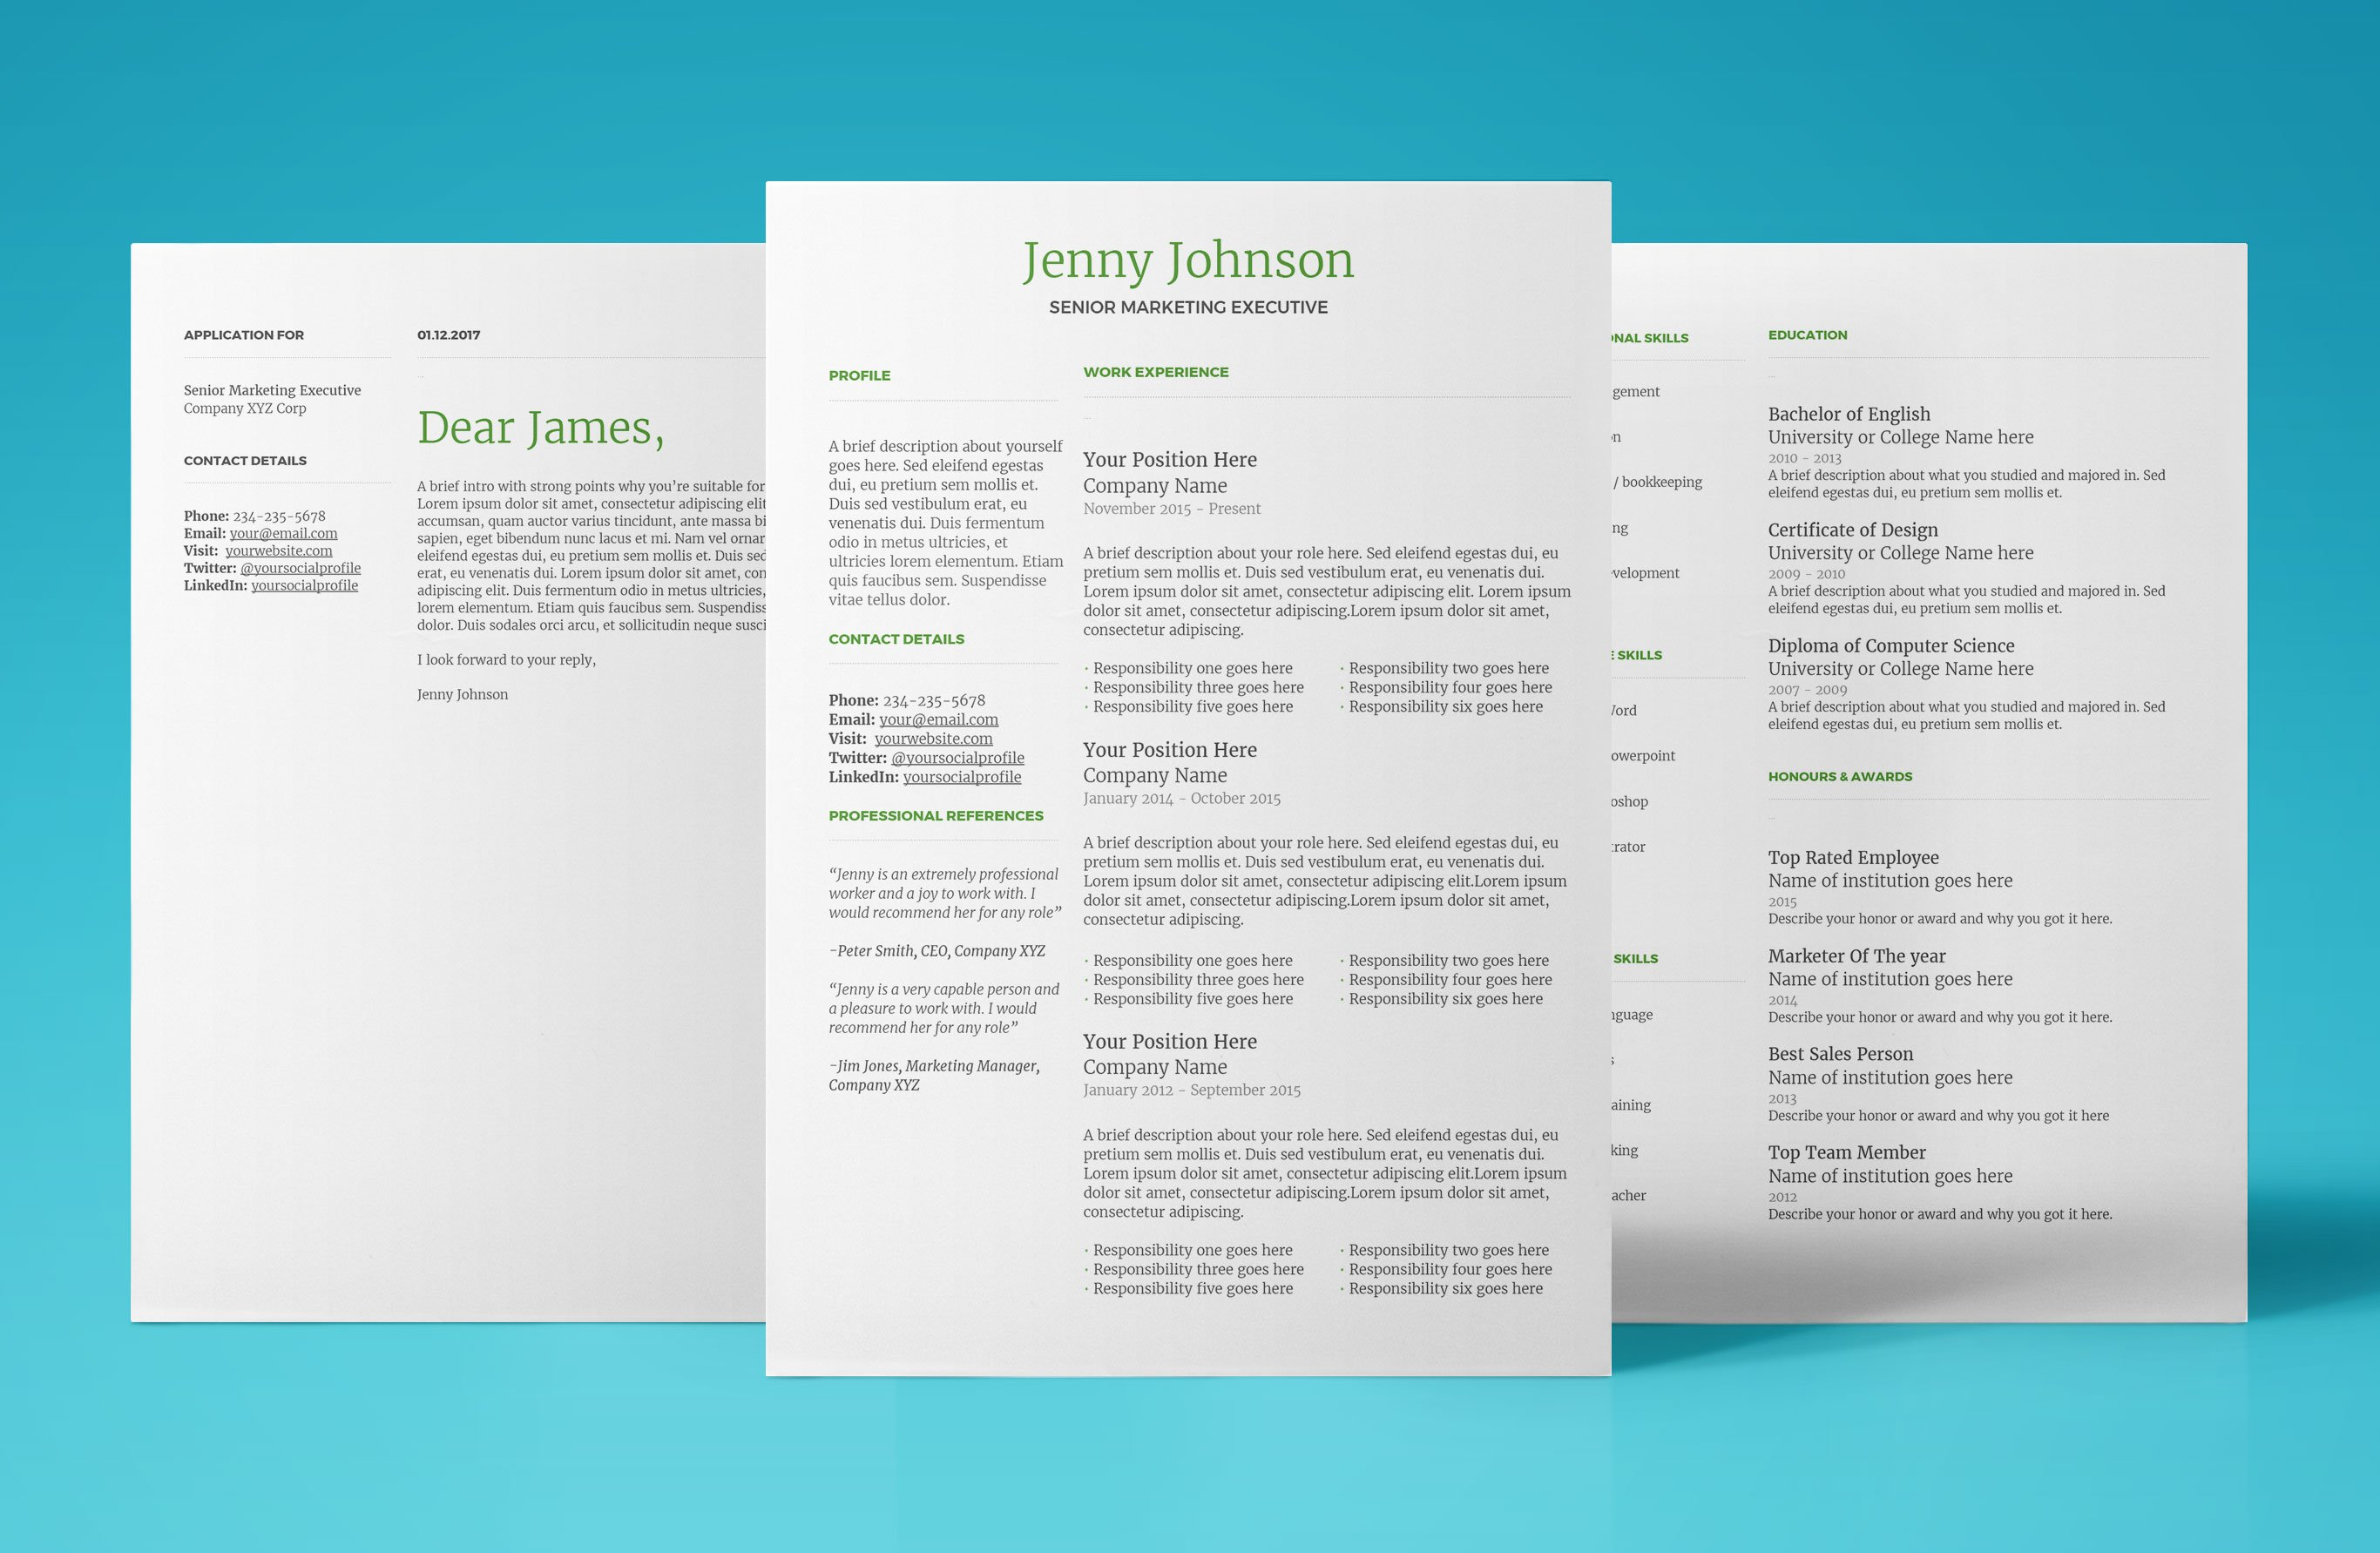 Google Docs Resumes Templates Resume Template For Google Docs Instant Download 2018